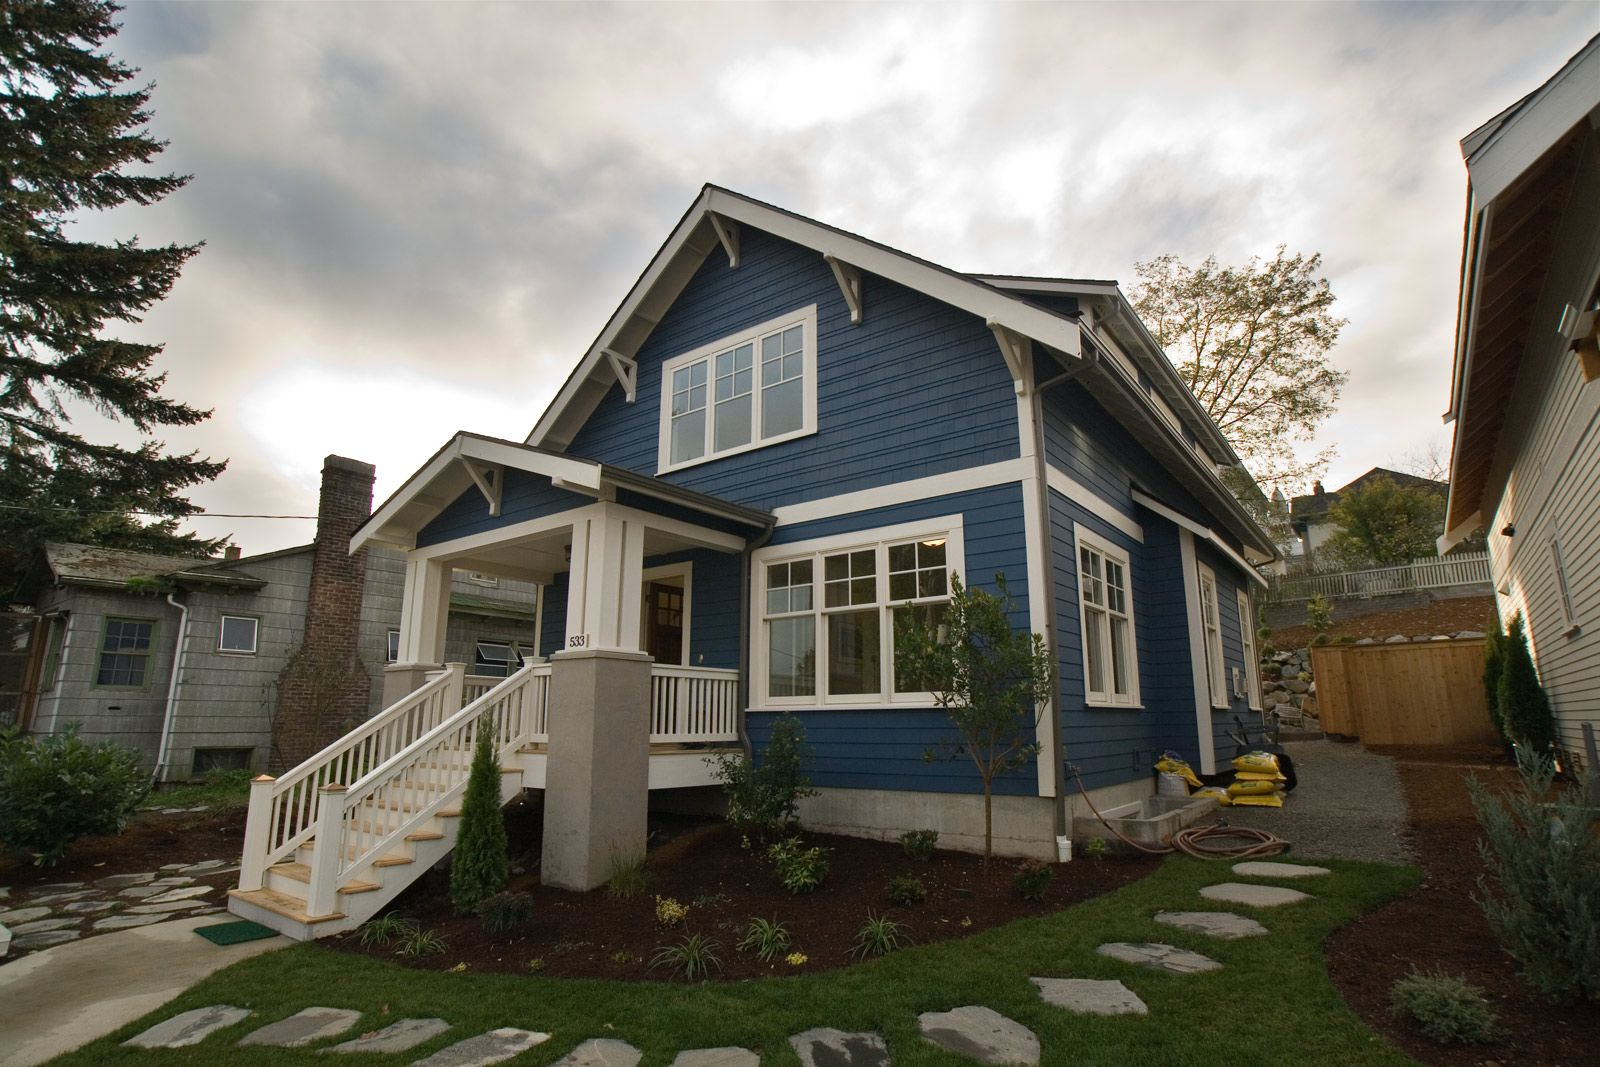 Classic Craftsman Bungalow Colors For Sale New 20th Ave Craftsman X3 Vintage Seattle A